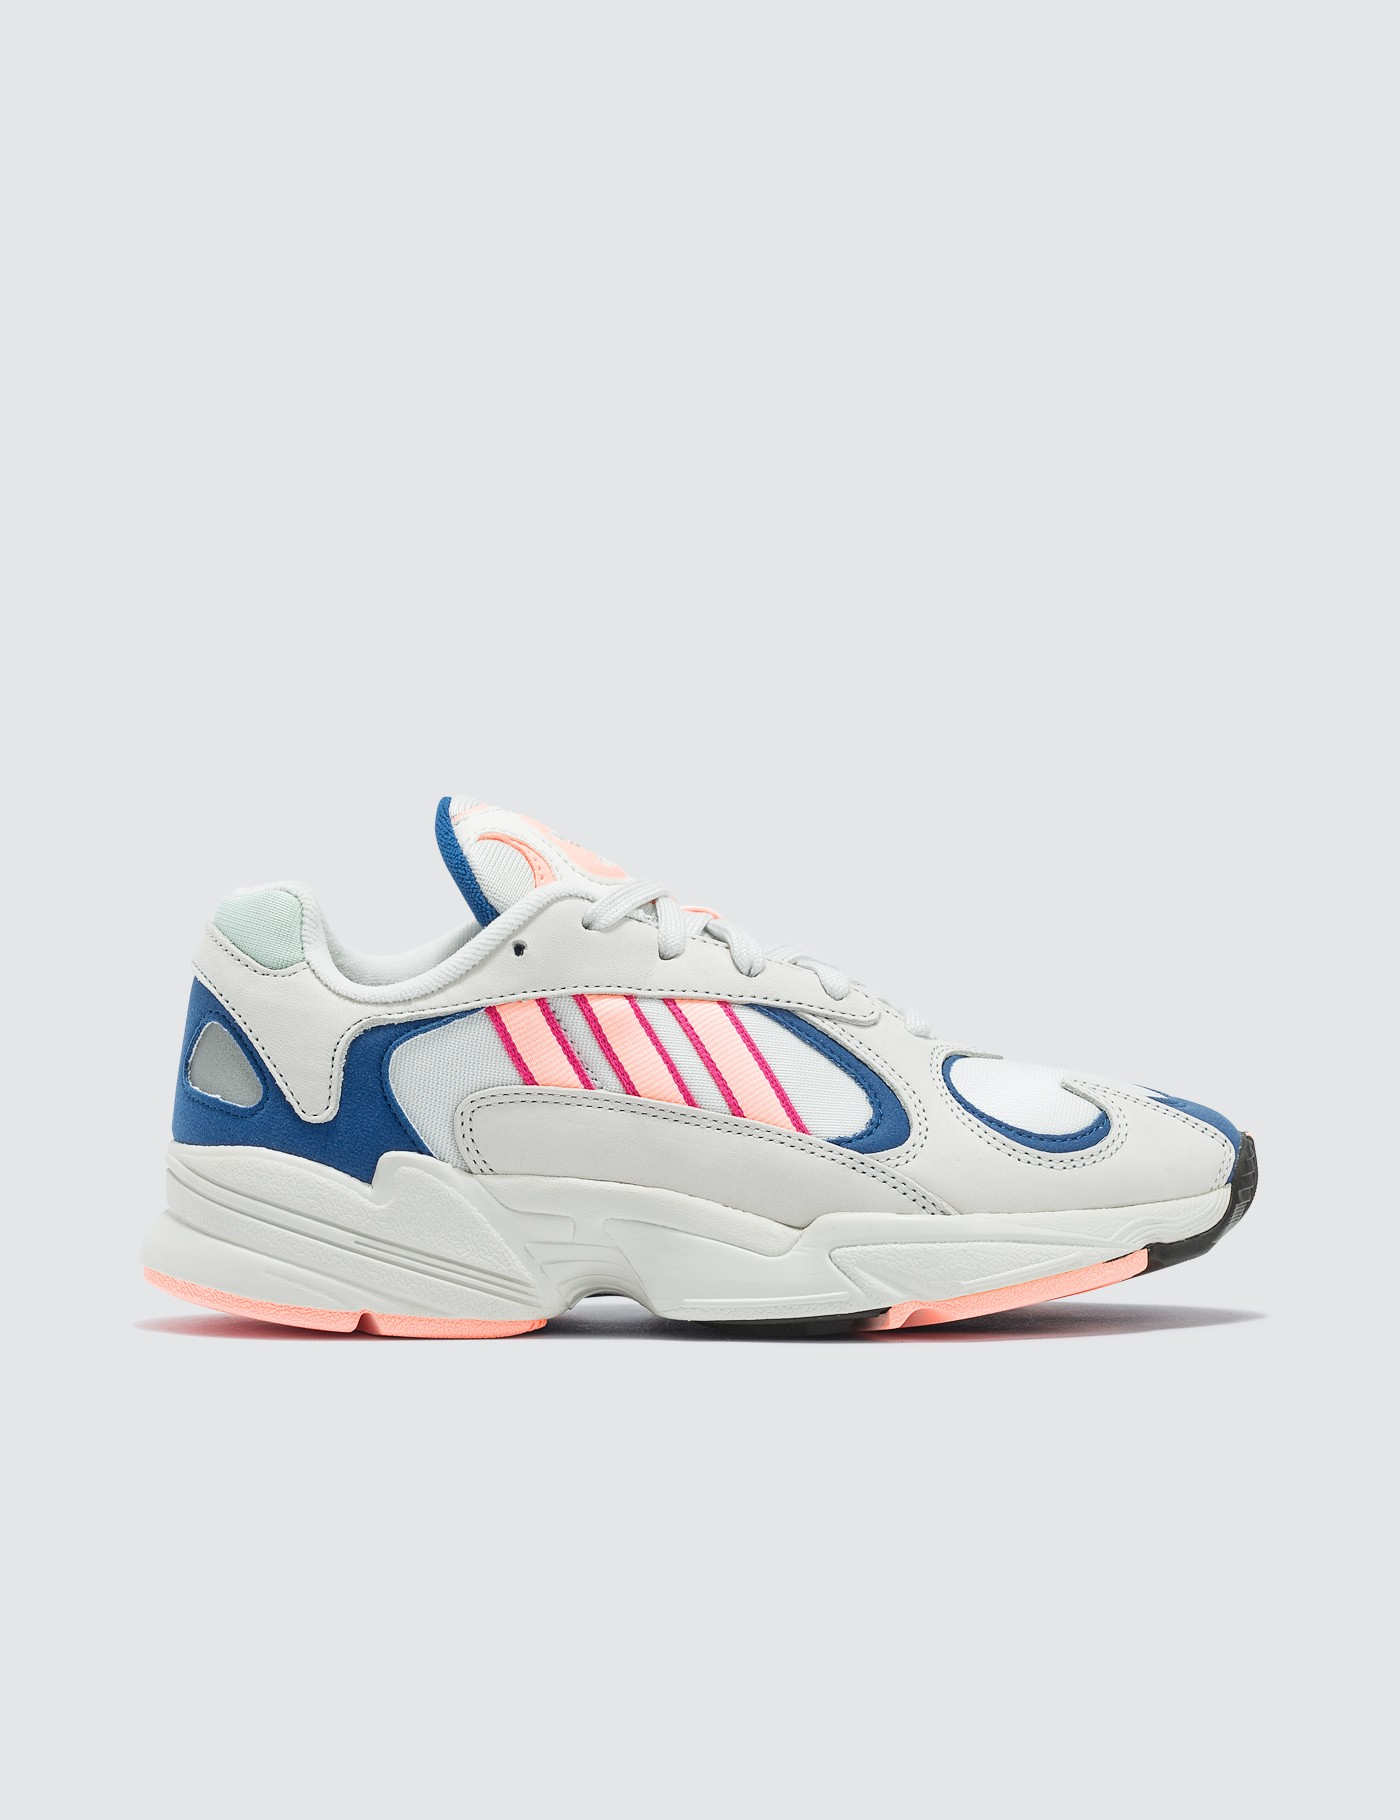 2018 sneakers usa cheap sale save up to 80% Yung-1 Sneaker, Adidas Originals